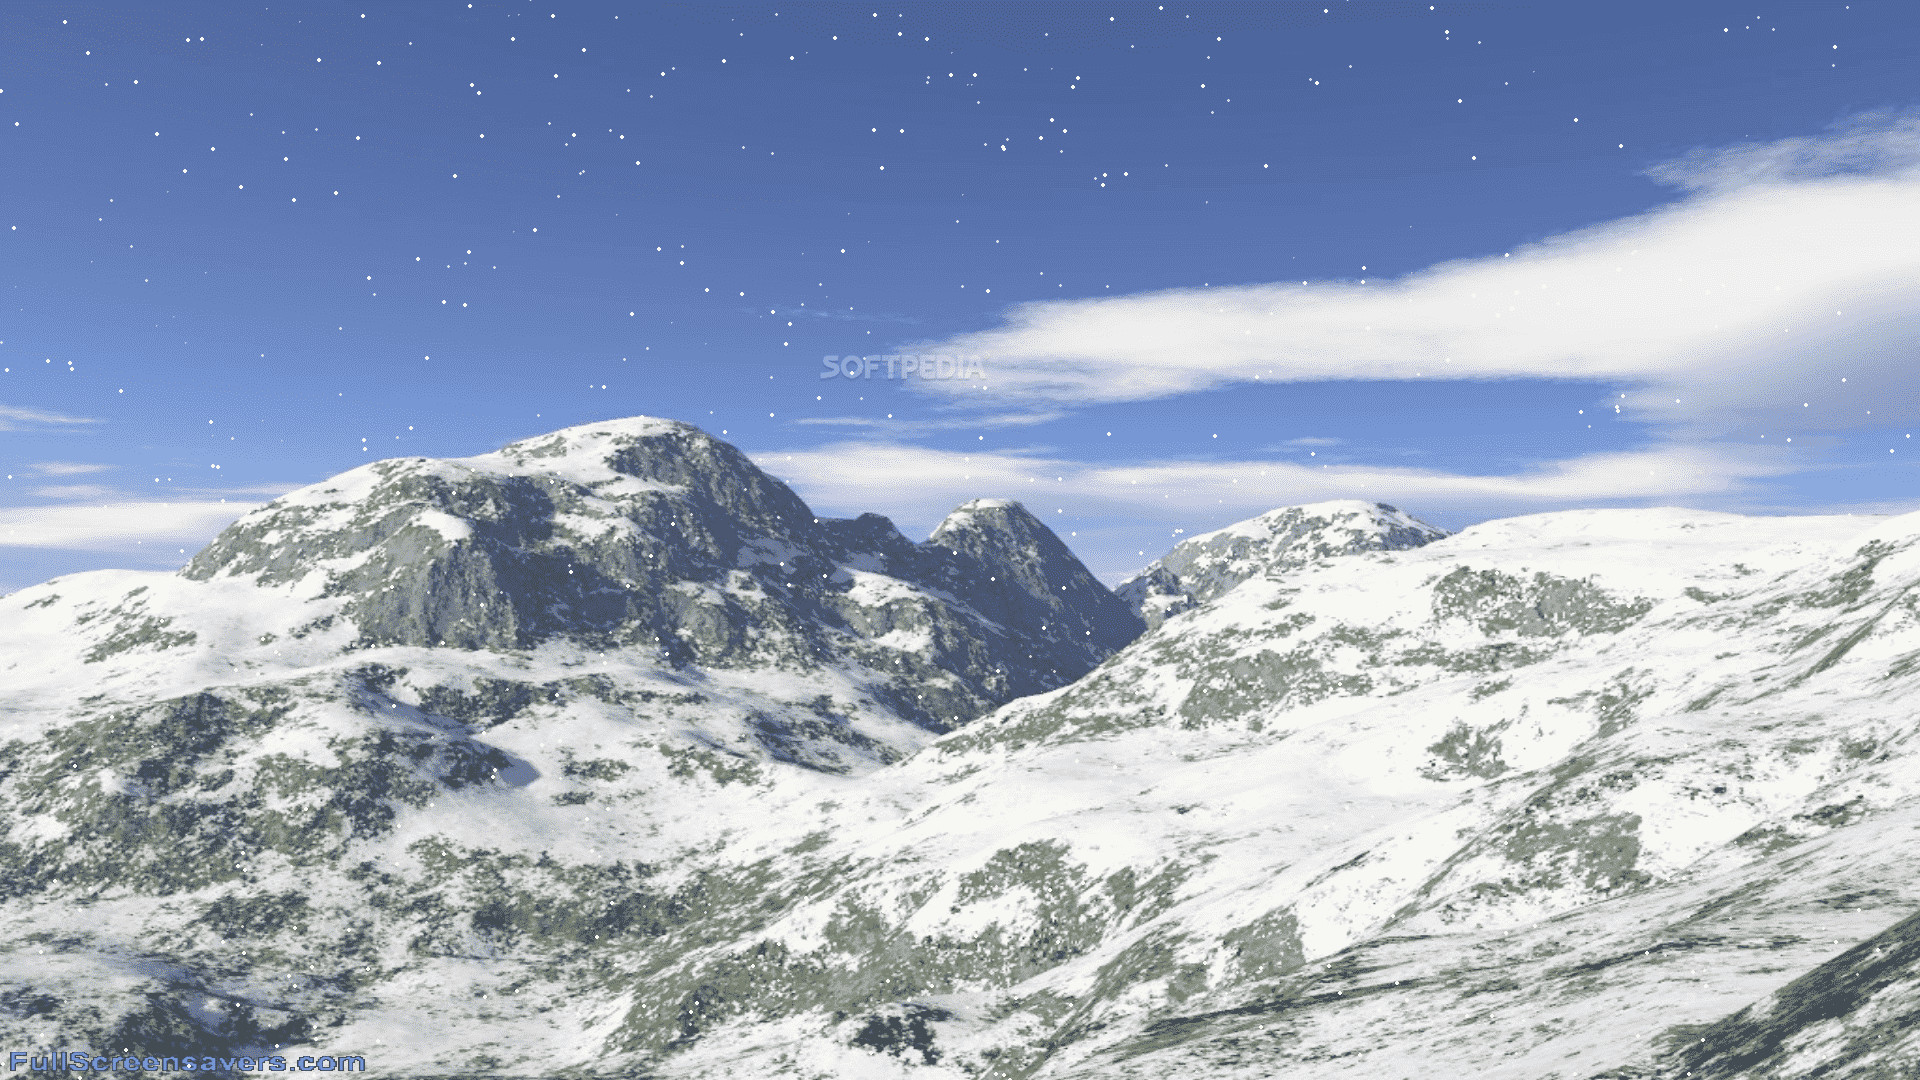 Animated Lion Wallpaper Hd Windows 10 Snowy Mountain Wallpaper 53 Images